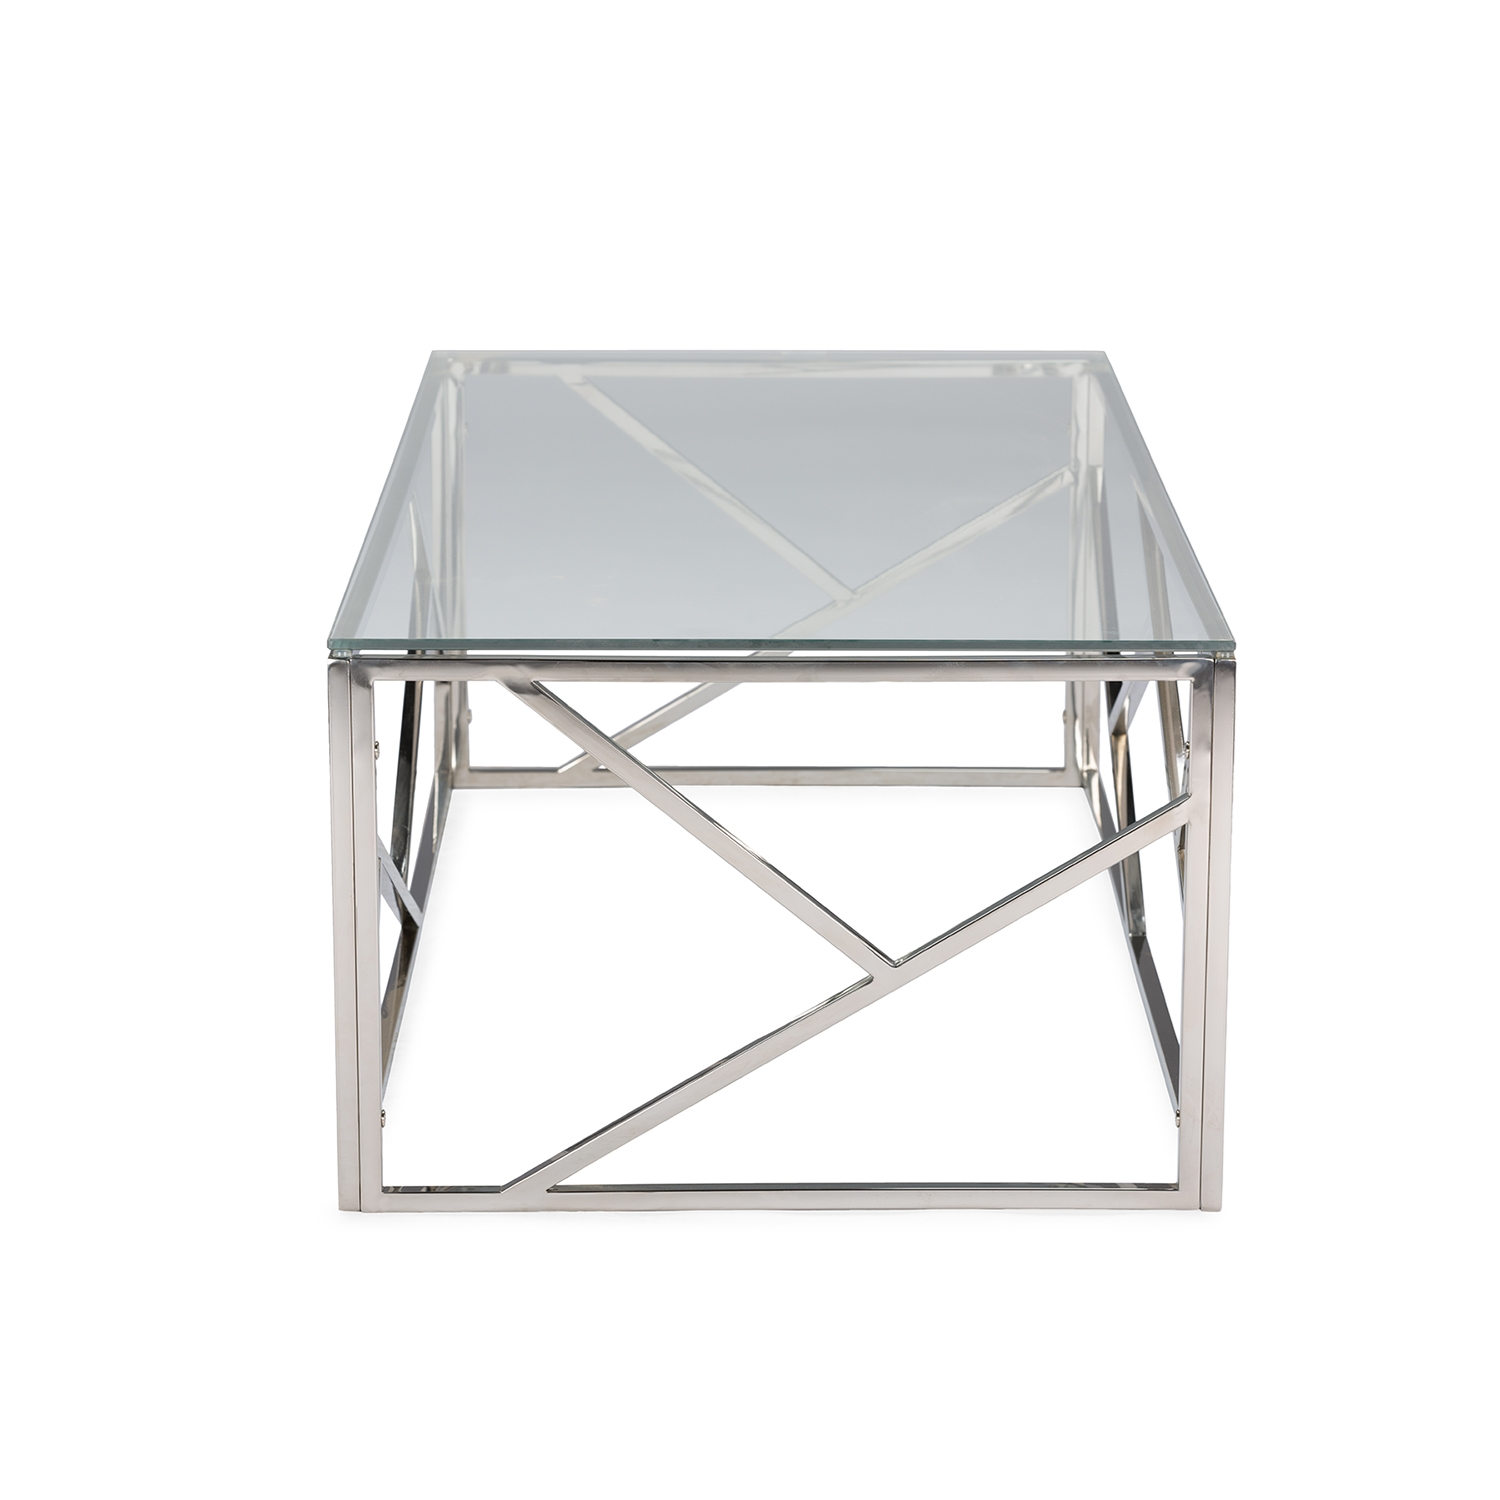 Contemporary Glass Table Part - 30: ... Baxton Studio Fiona Modern And Contemporary Stainless Steel Coffee Table  With Tempered Glass Top - BSOGY ...